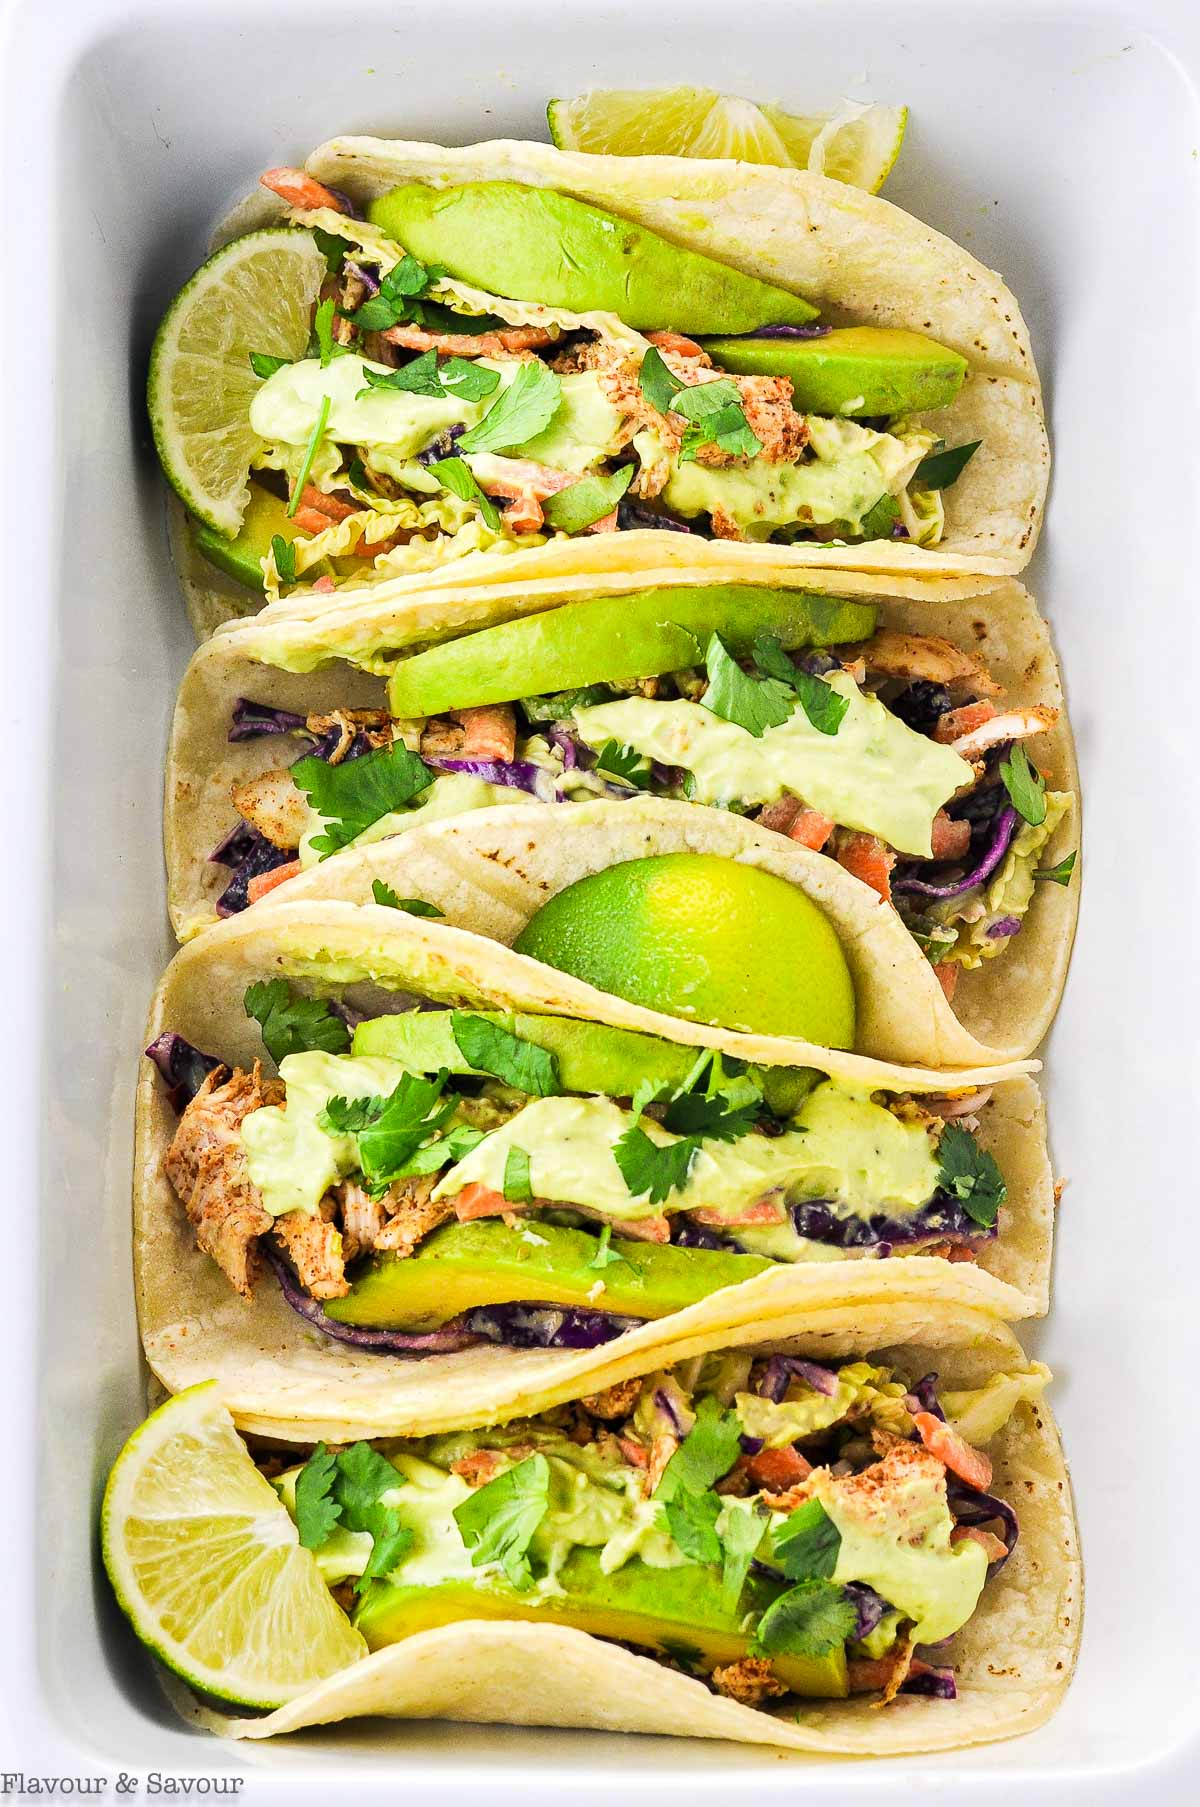 Four Shredded Chicken Tacos in a white serving dish